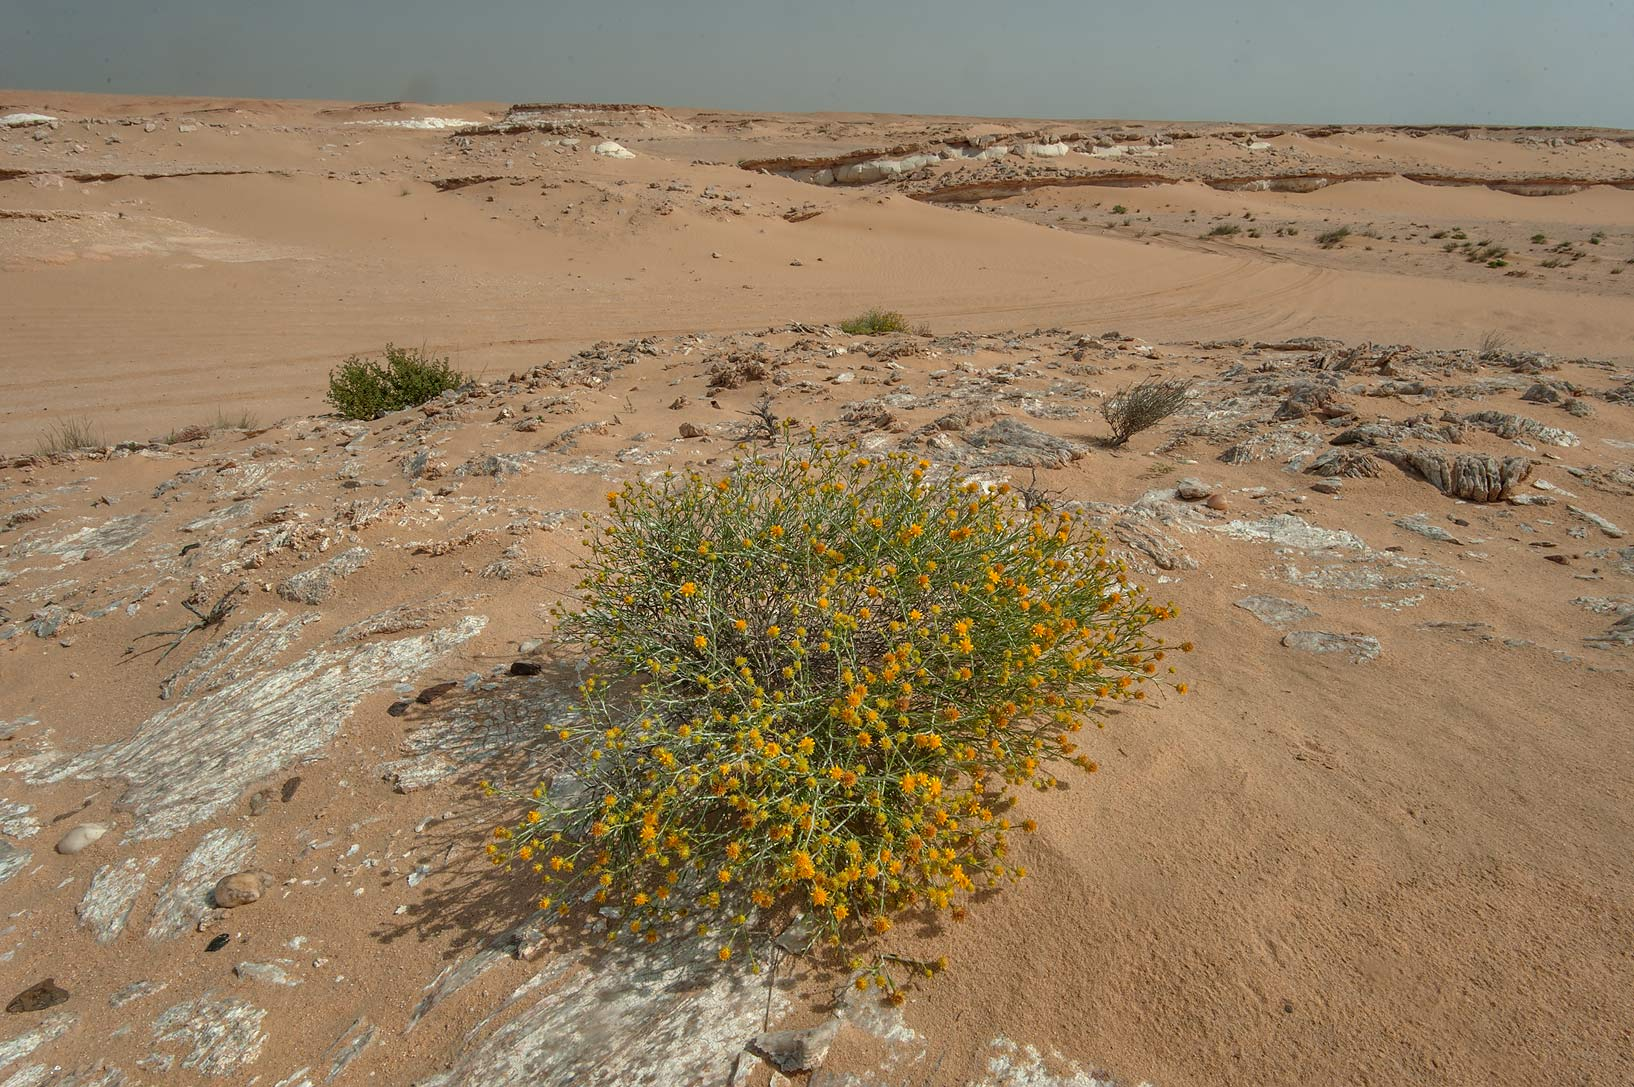 Blooming Arfaj (Rhanterium epapposum) growing on...an Nakhsh) in south-western Qatar